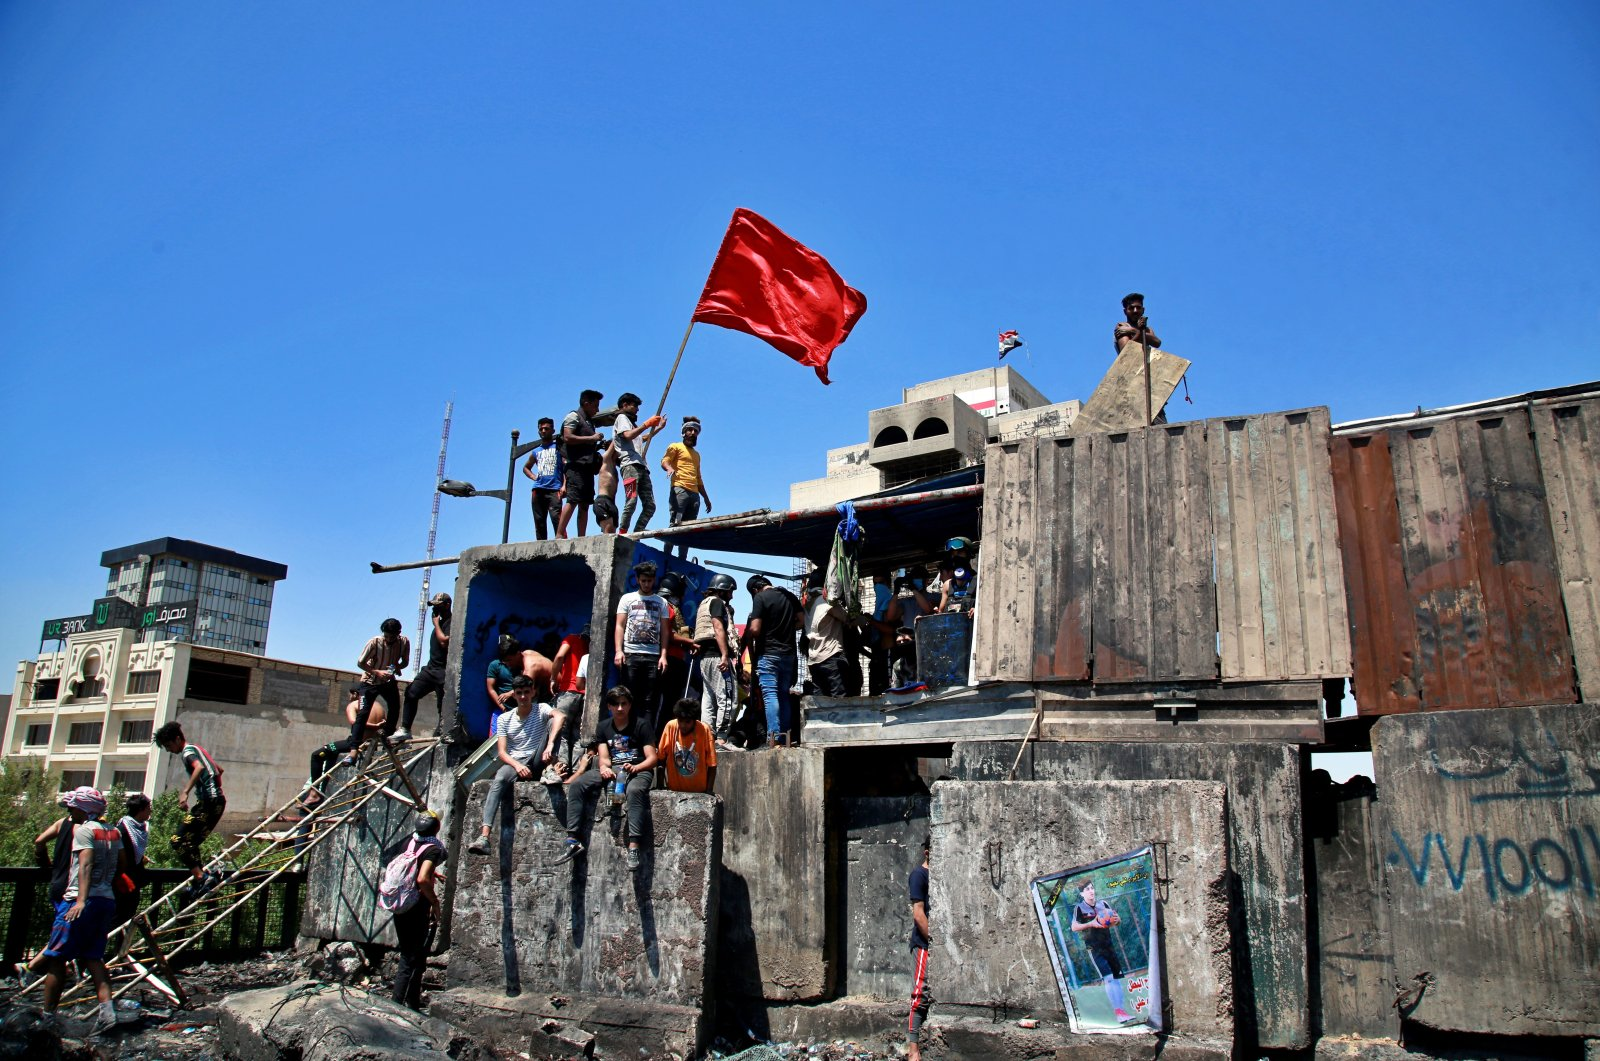 Anti-government protesters stage a sit-in on barriers set up by security forces to close the Jumhuriyah Bridge leading to the Green Zone government area, during ongoing protests in Baghdad, Iraq, May 10, 2020. (AP Photo)